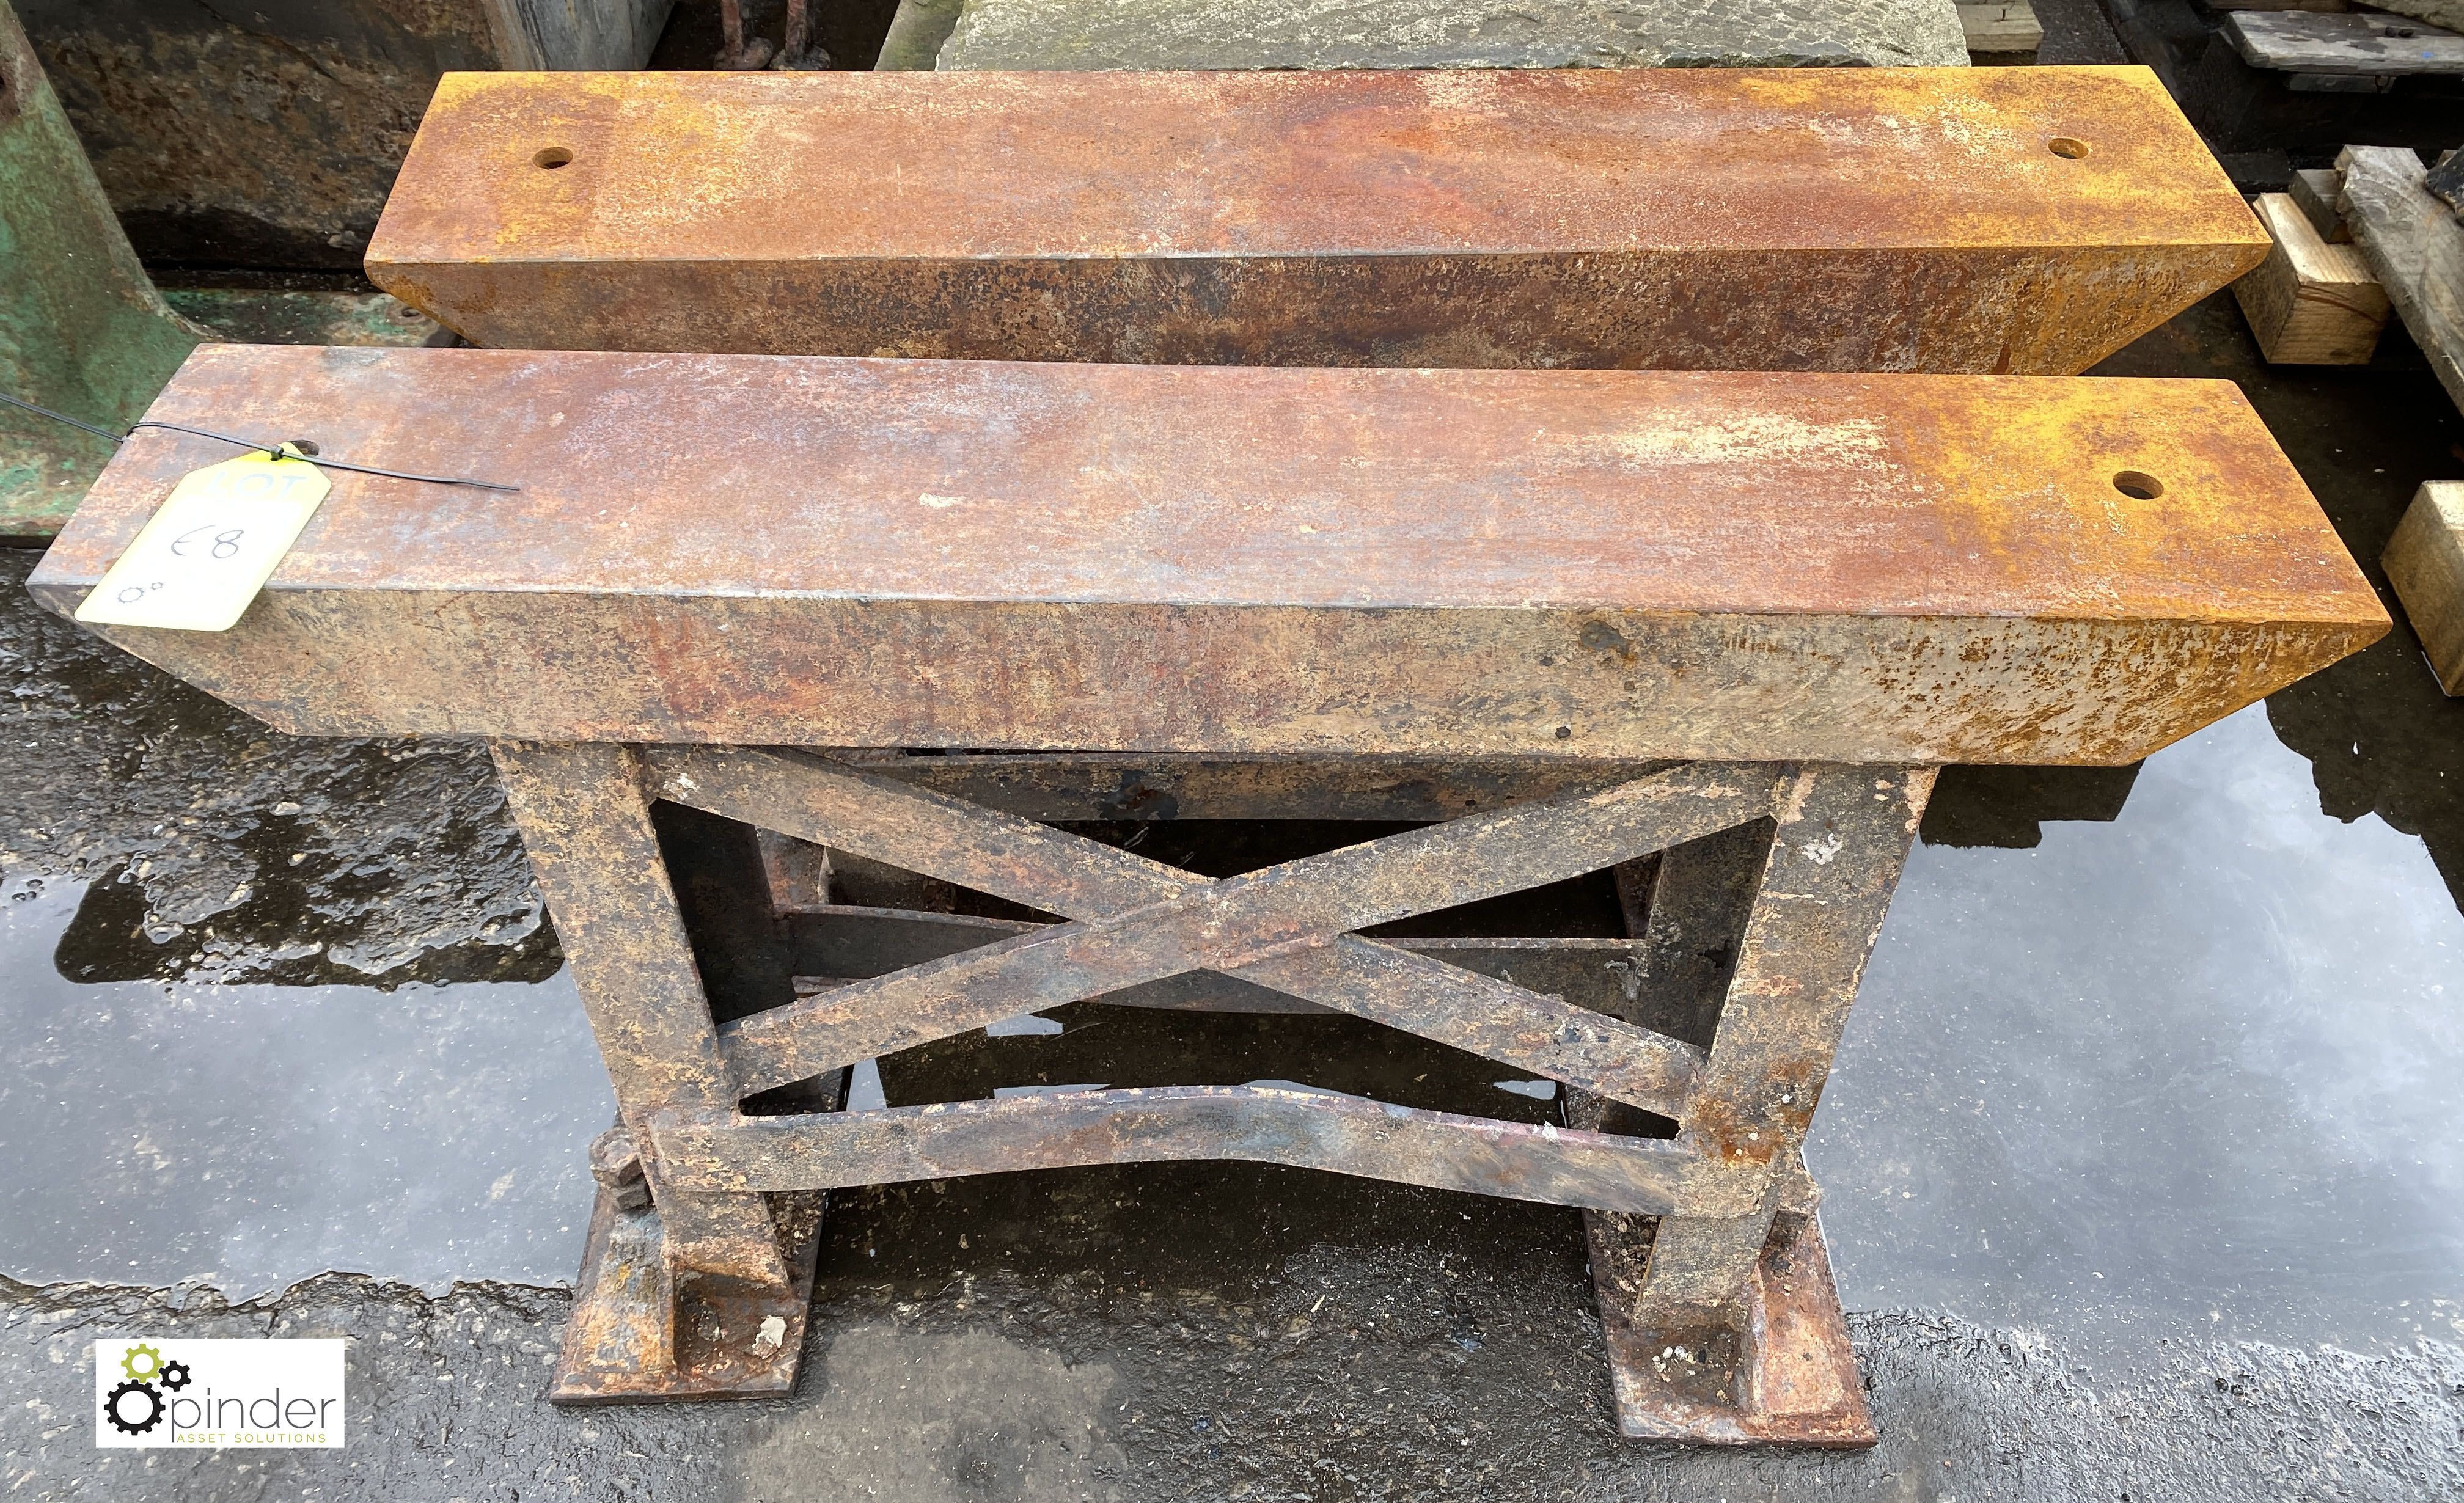 Pair heavy duty cast iron Bench Supports, 960mm x 175mm x 610mm tall (LOCATION: Sussex Street, - Image 3 of 3